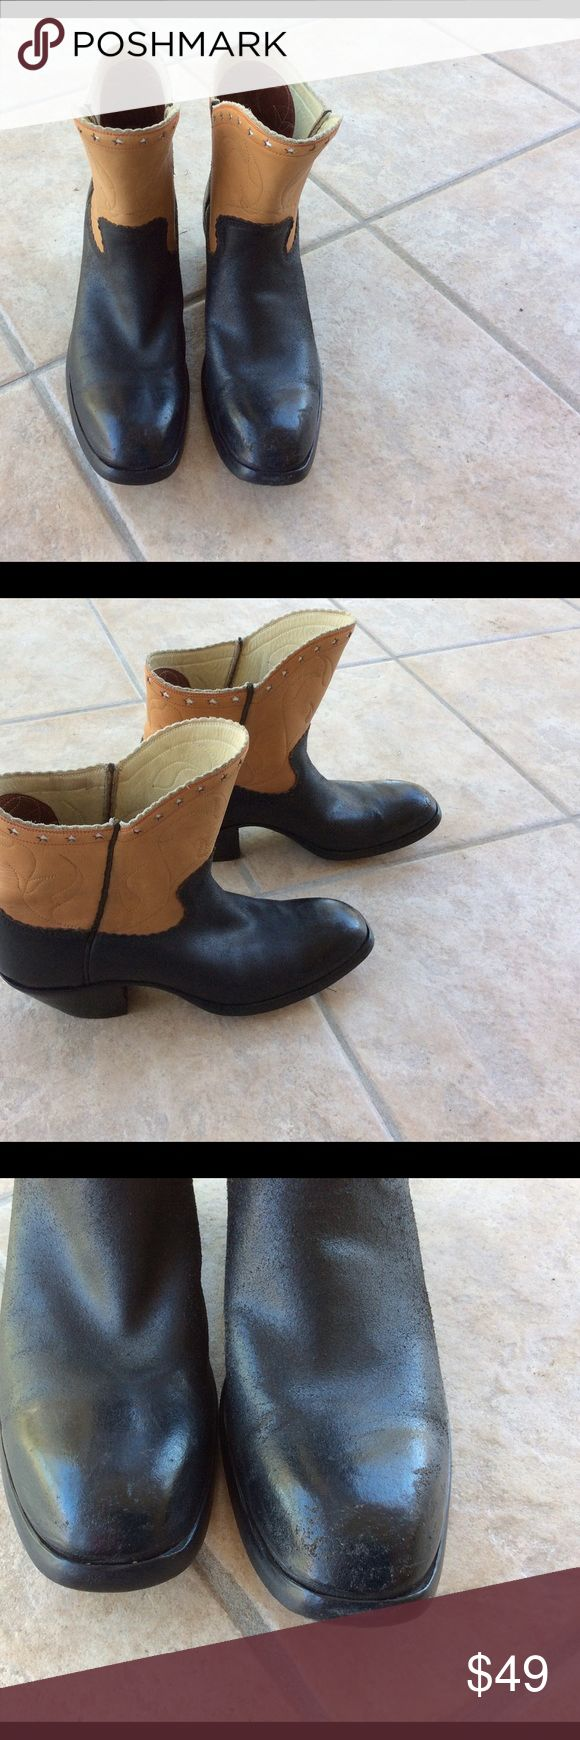 Colour magic car polish black - Builtrite Cowboy Boots These Are An Adorable Two Tone All Leather Short Cowboy Bootie